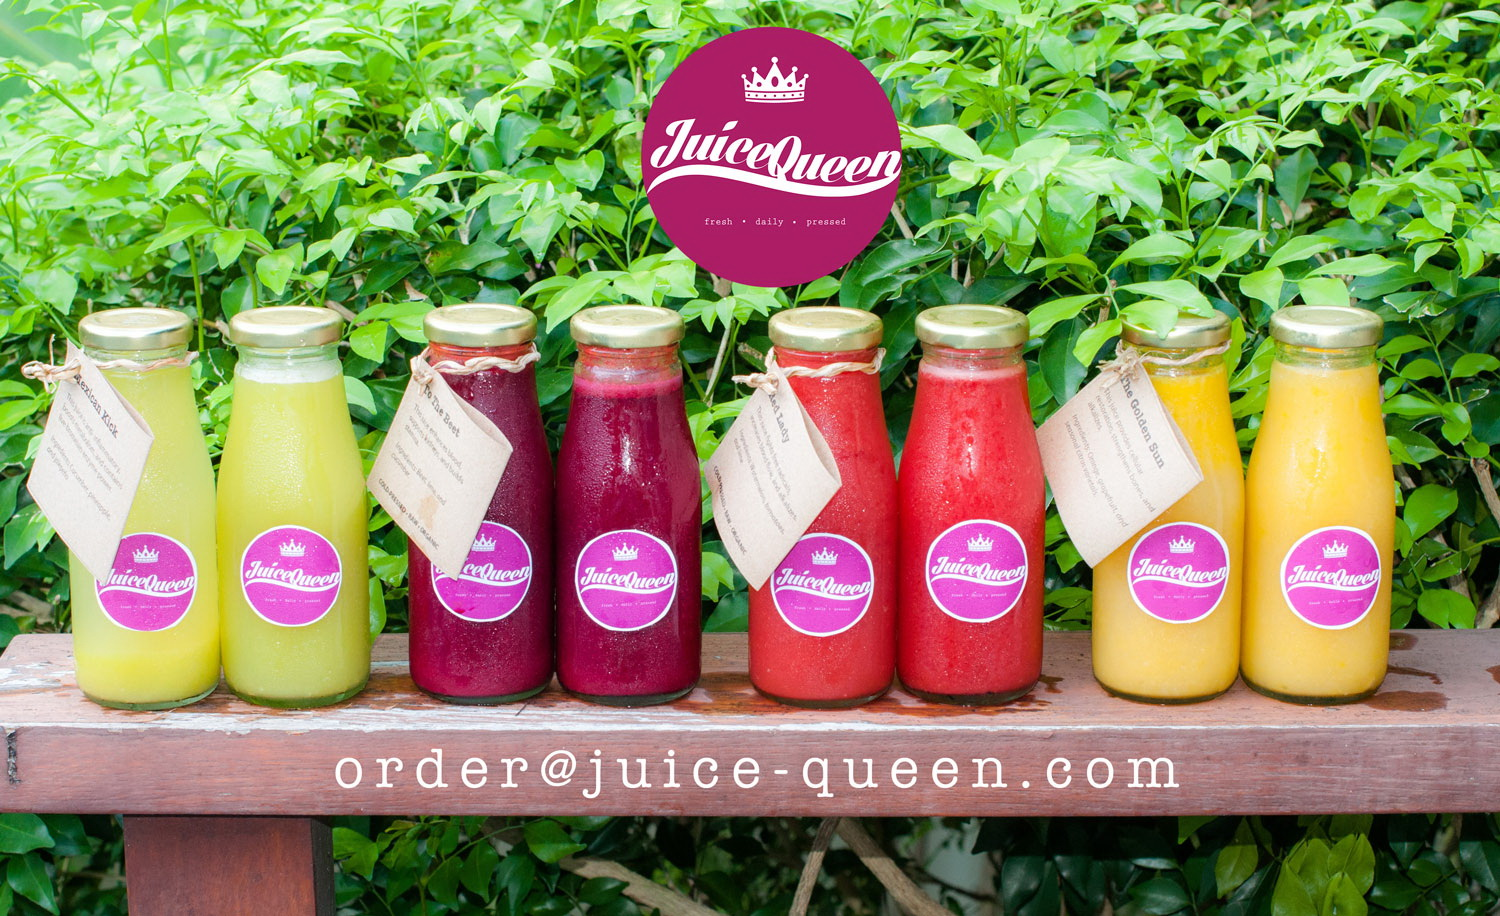 Juice Queen Samui delivers daily pressed juices for those interested in good health | Samui Times